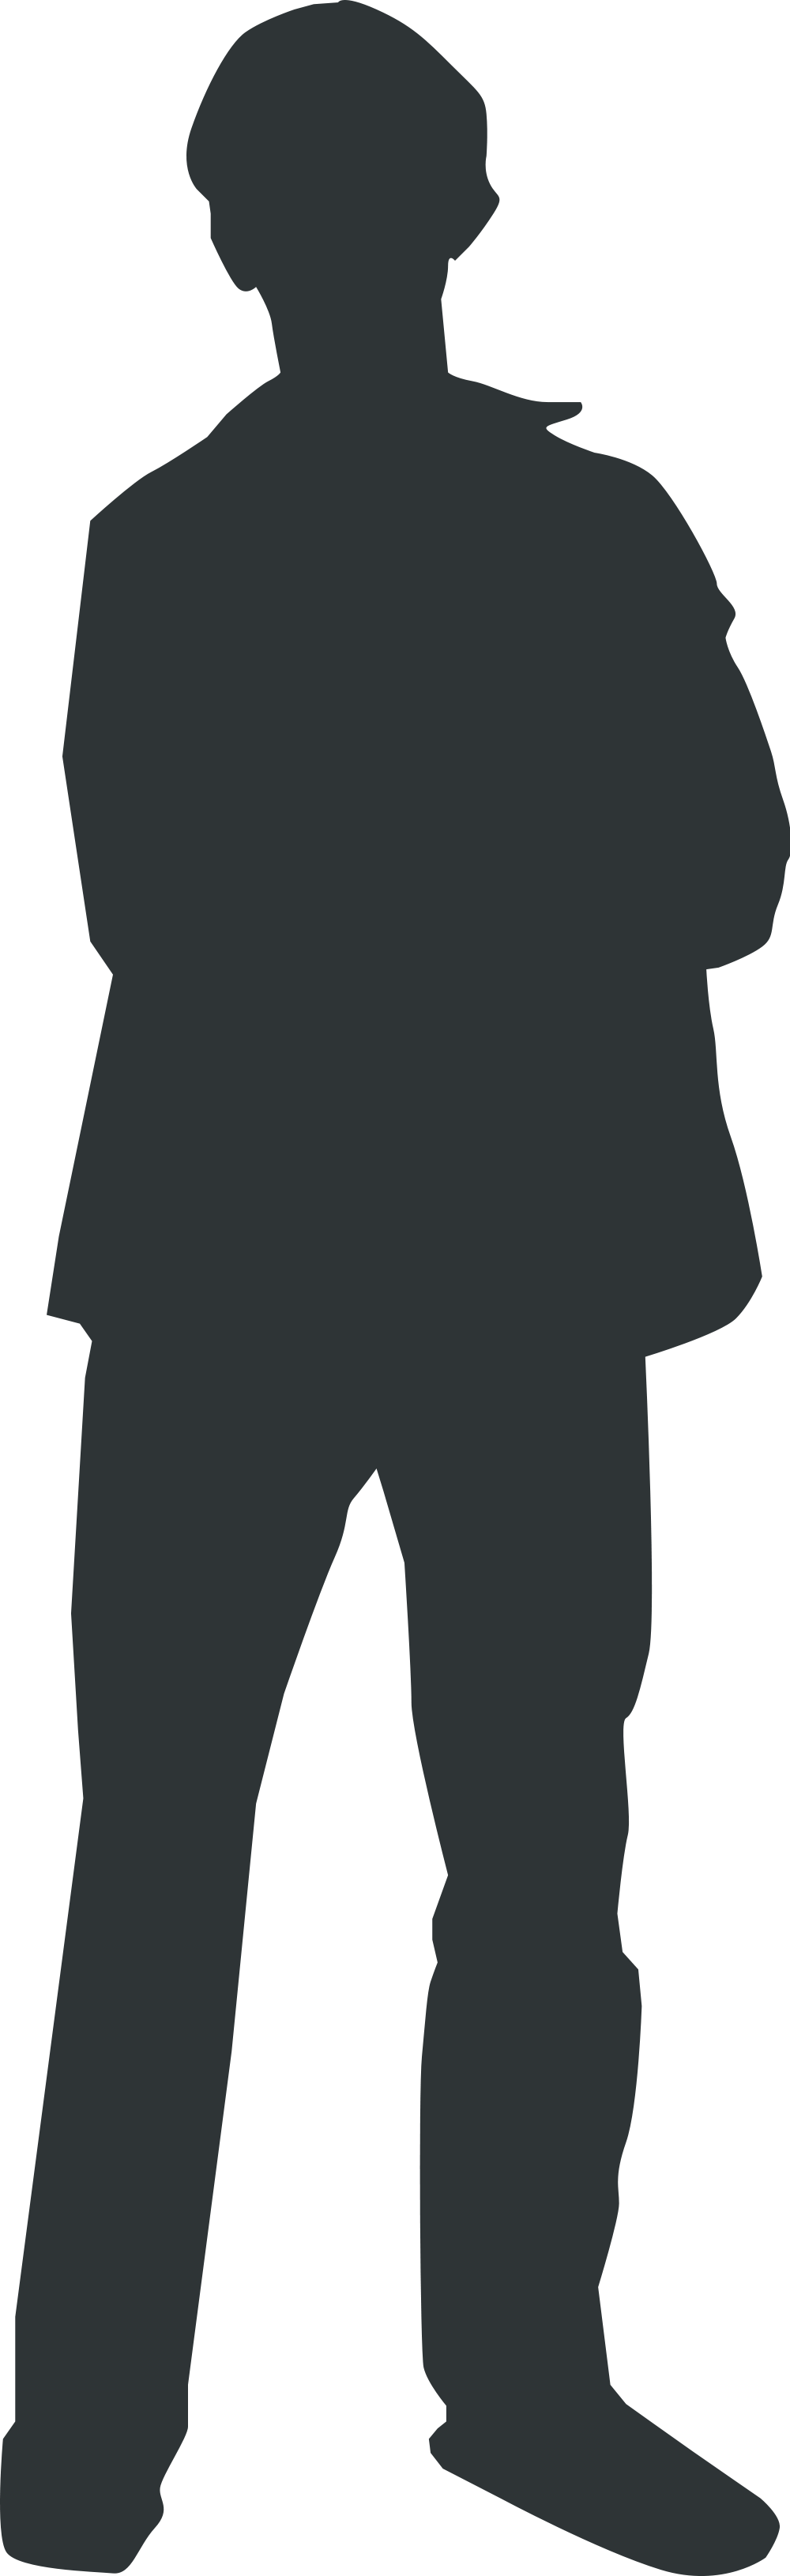 Person clipart shadow. File outline svg wikimedia